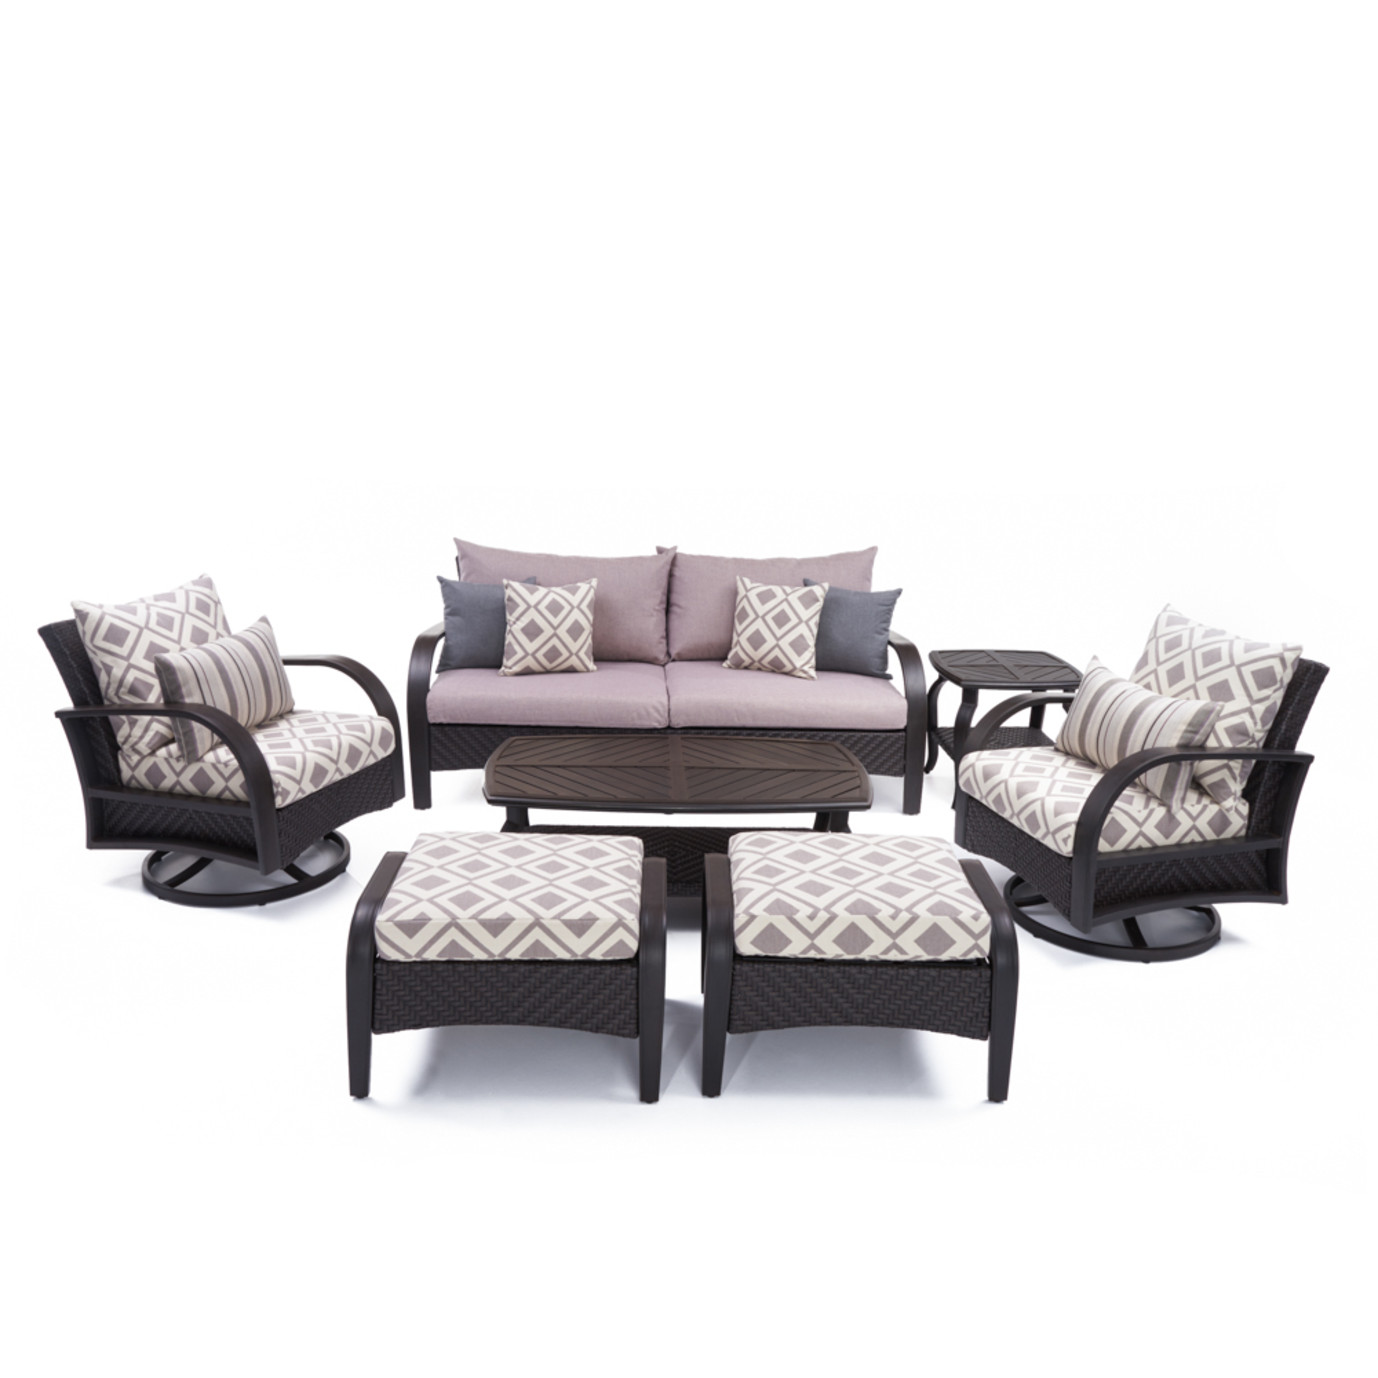 Barcelo™ 7pc Motion Club Deep Seating Set - Wisteria Lavender